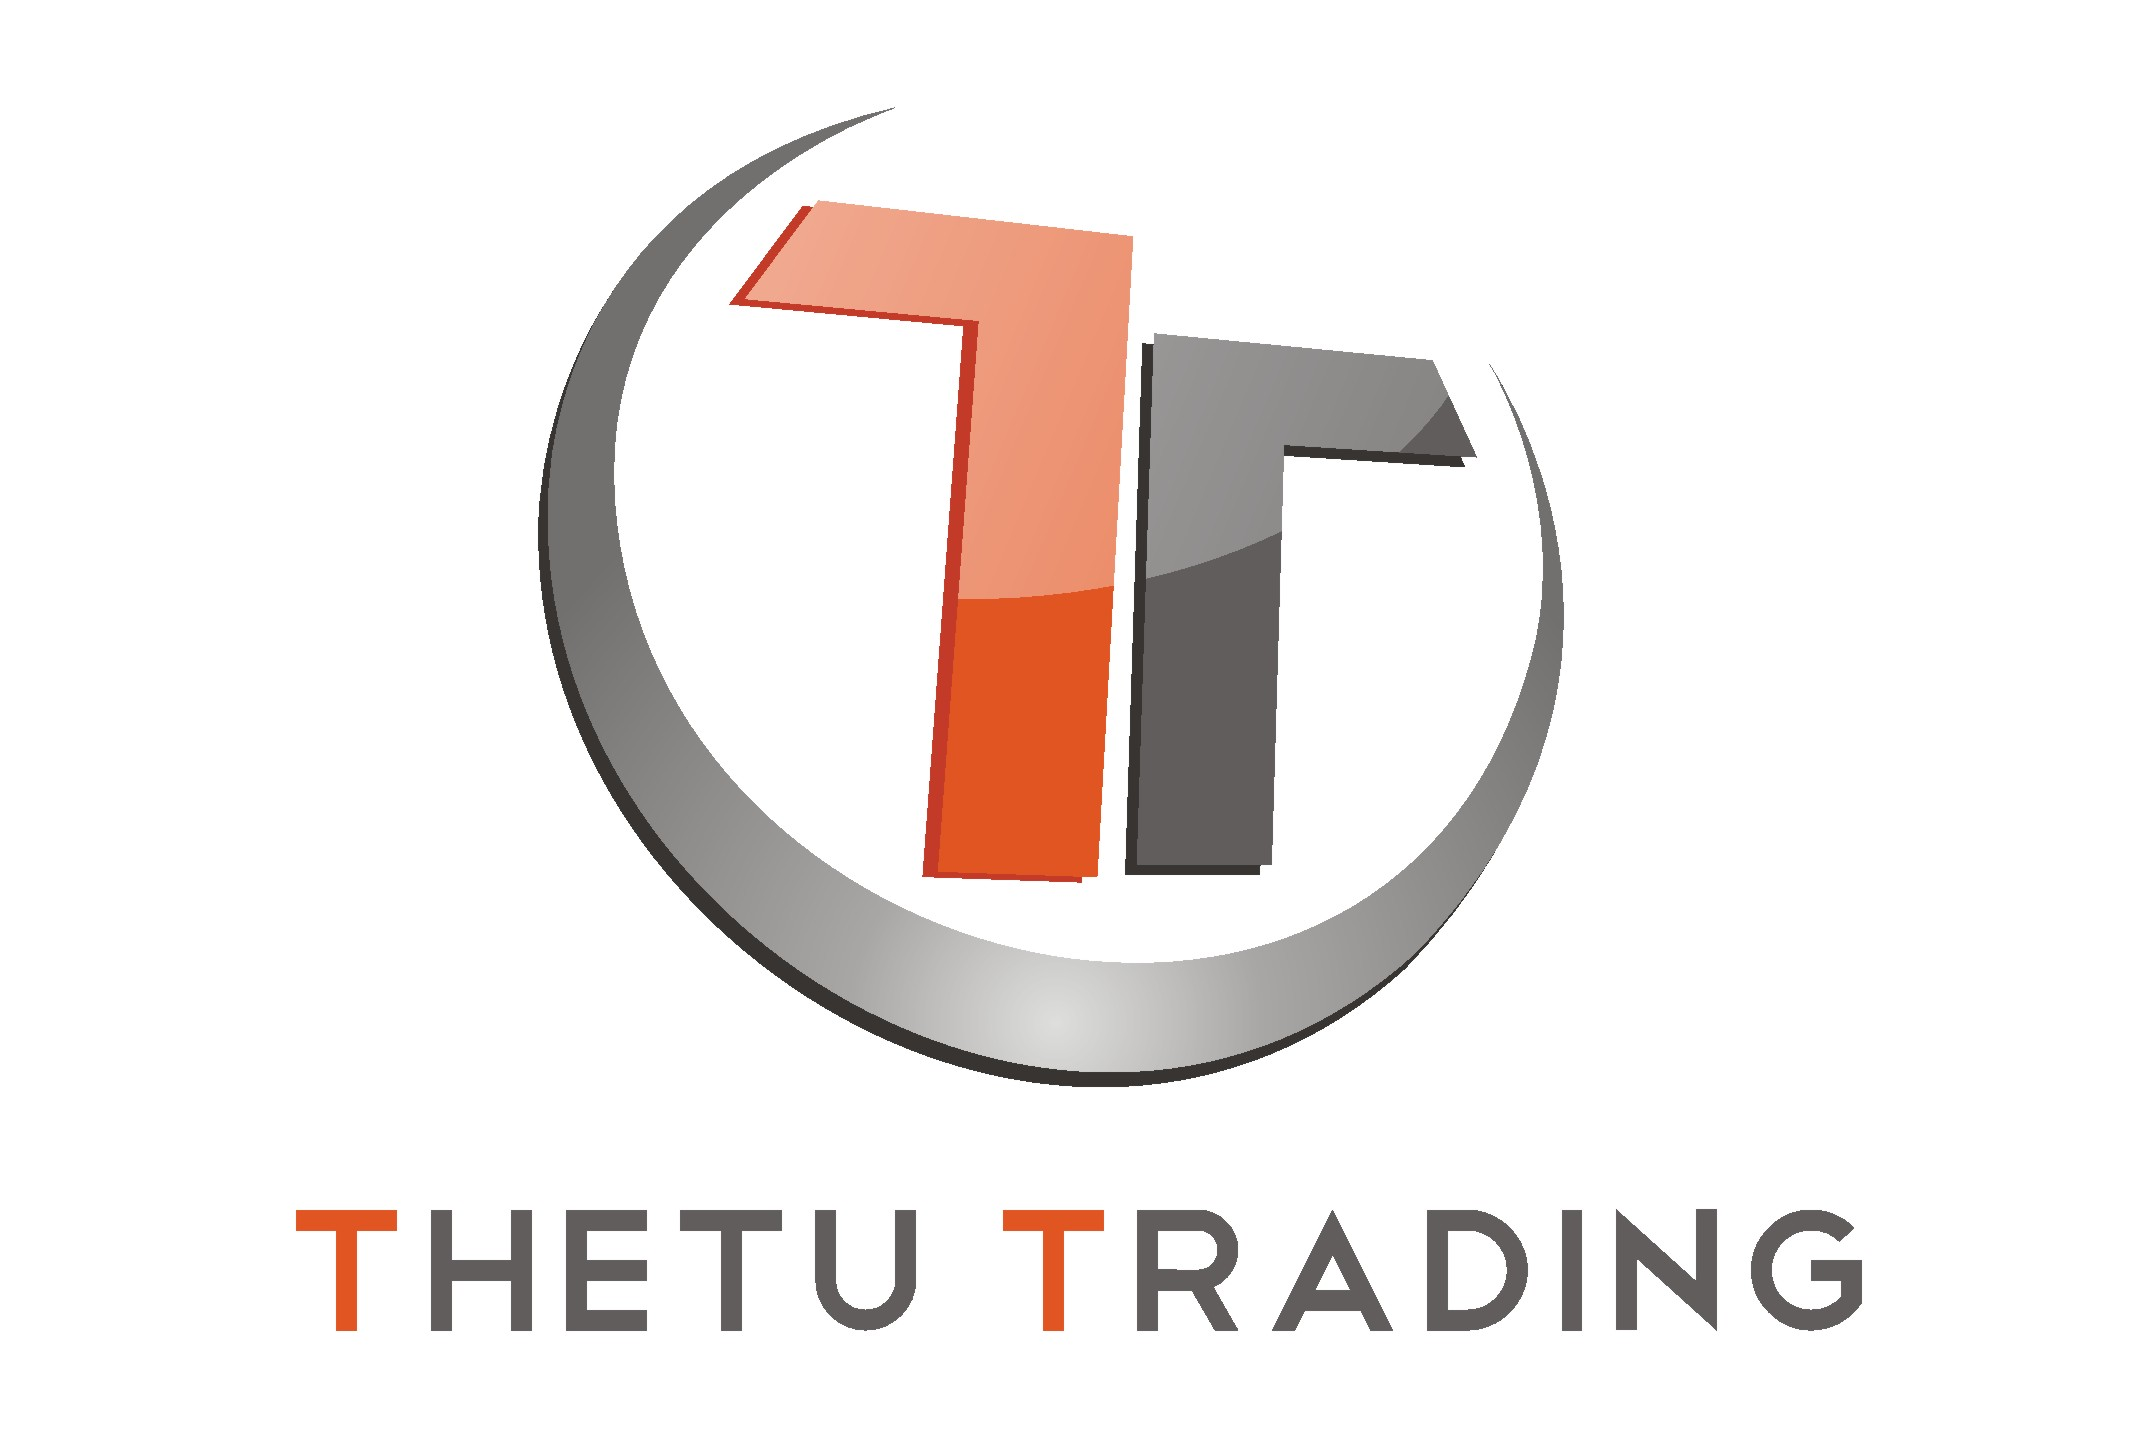 Supply chain network thetu trading cc thetu trading cc biocorpaavc Image collections